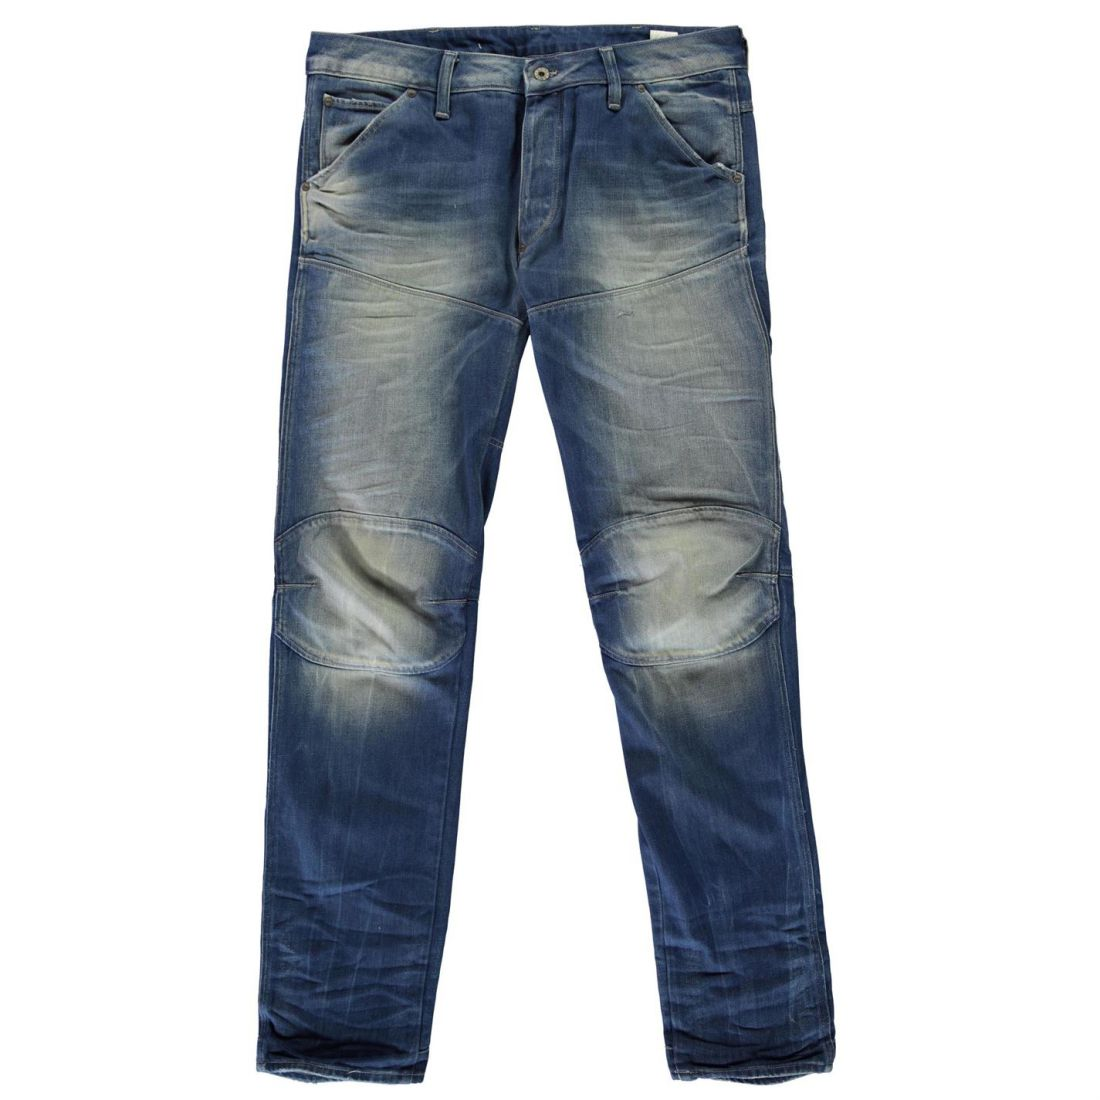 cbc520fa068 G Star Mens 5620 3D Low Tapered Jeans Straight Pants Trousers Bottoms Cotton